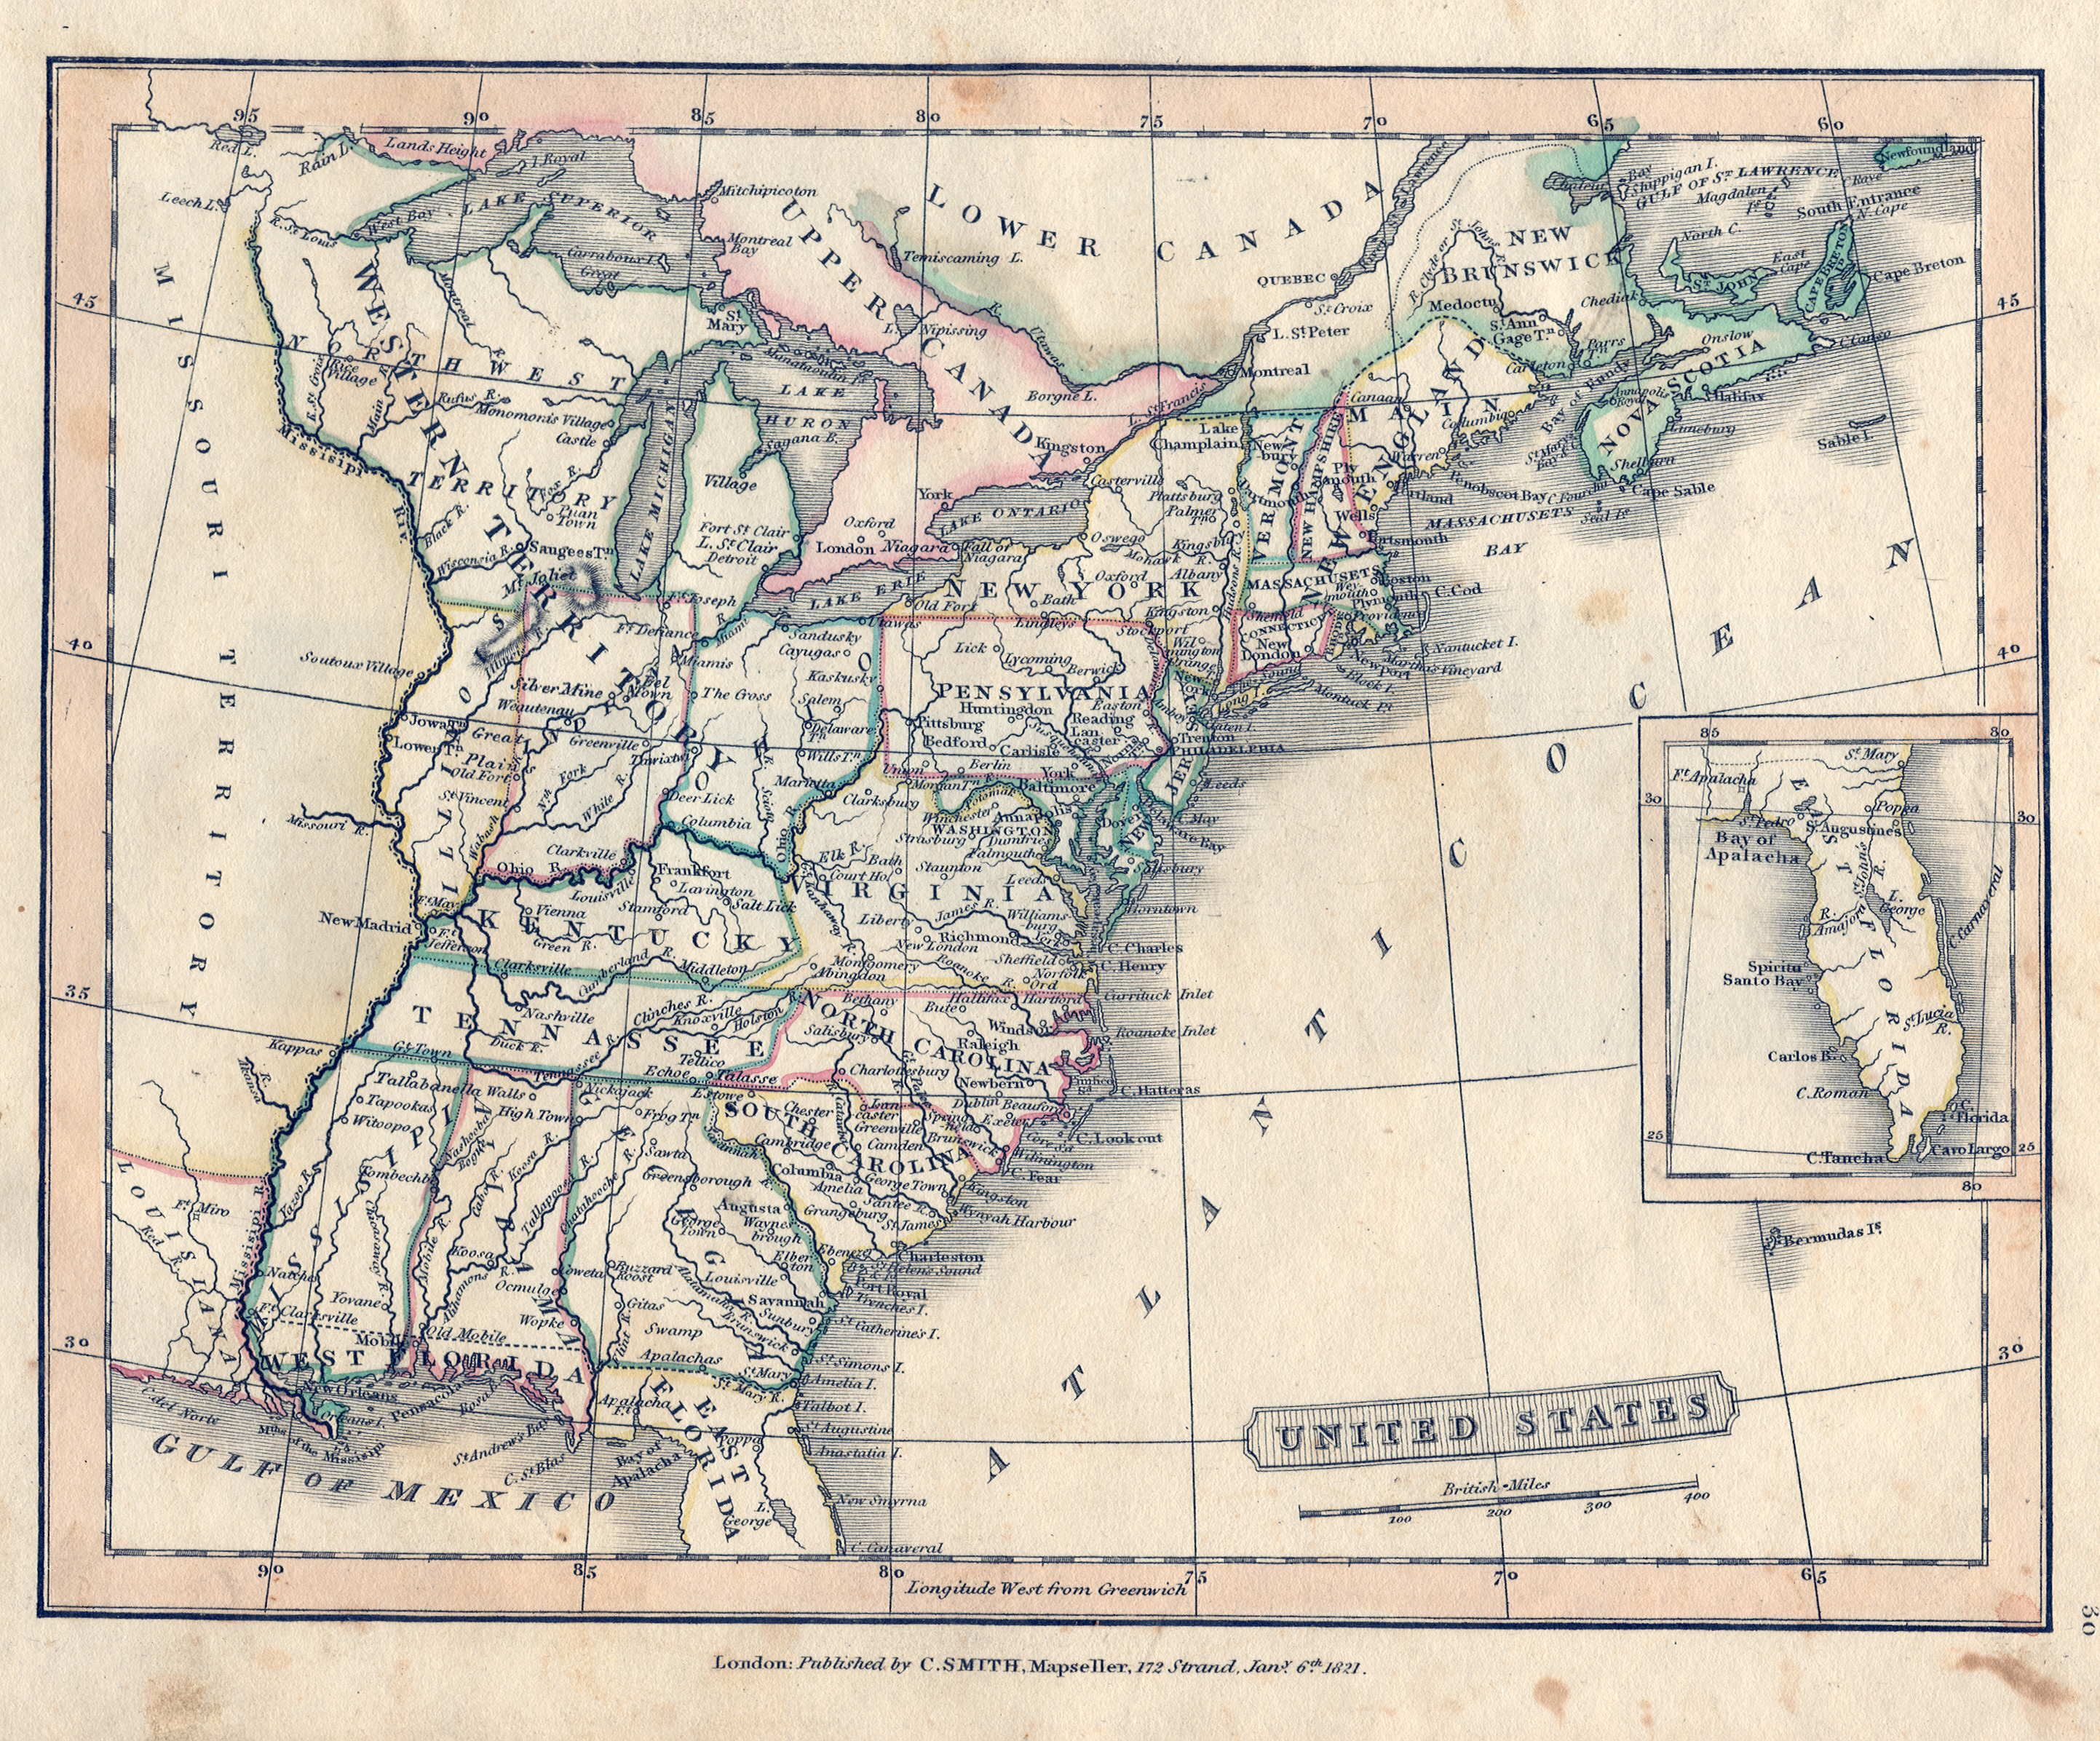 1820s pennsylvania maps sciox Choice Image